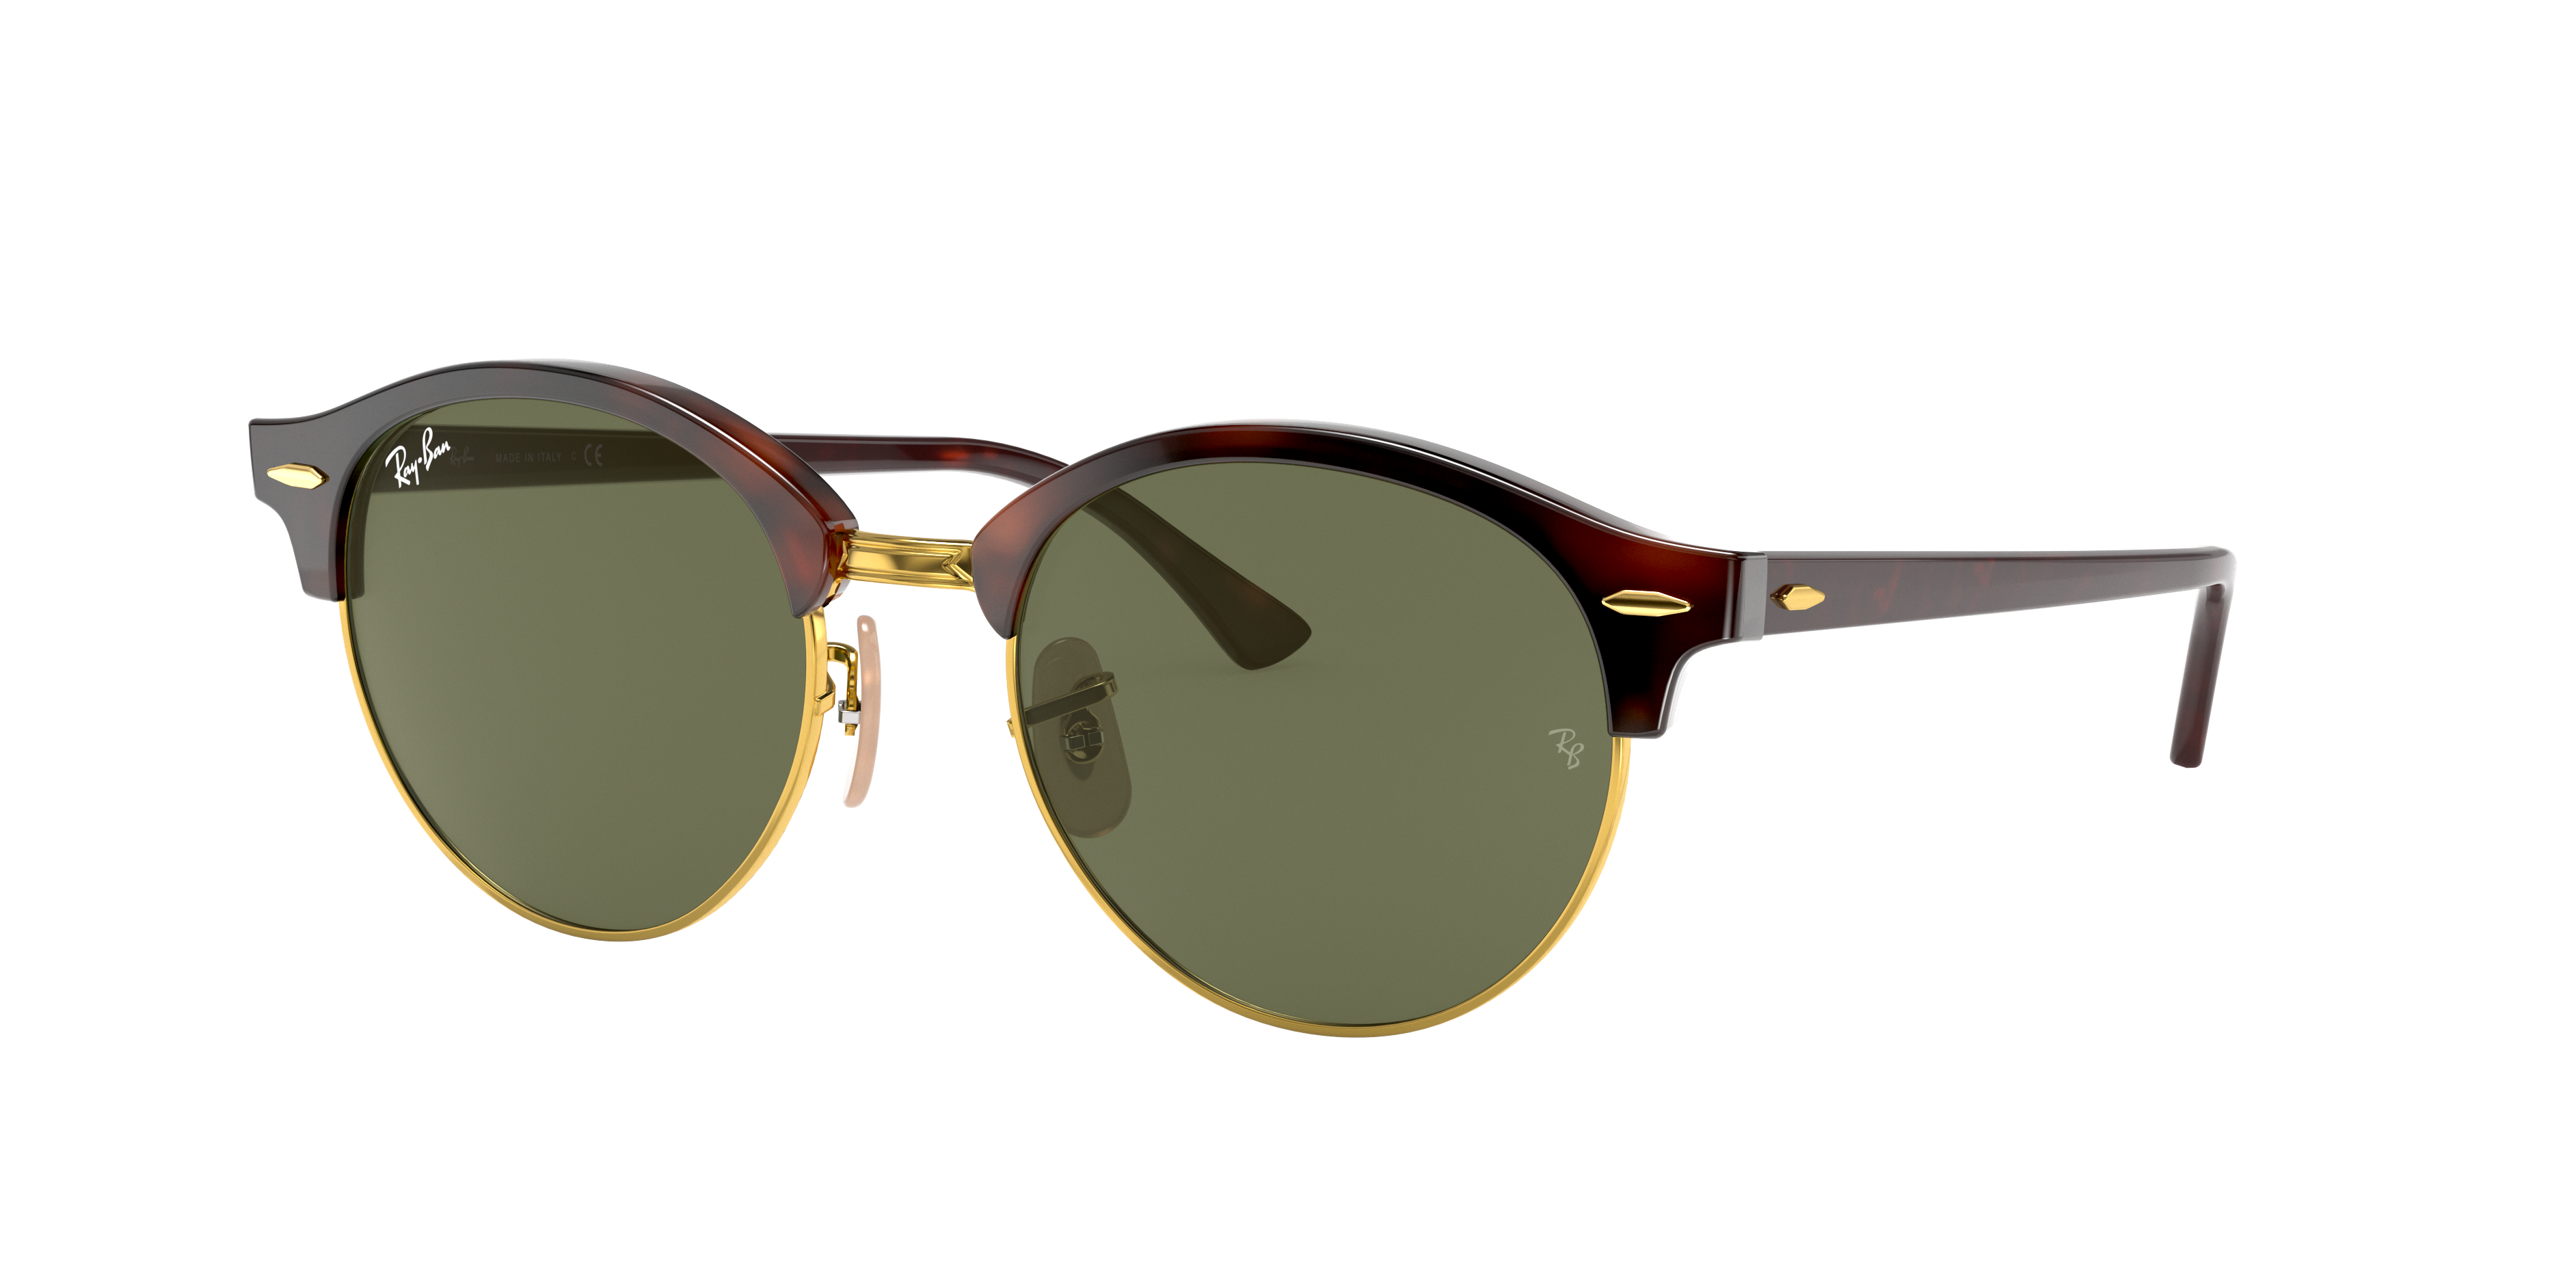 Ray-Ban Clubround Classic Low Bridge Fit Tortoise, Green Lenses - RB4246F